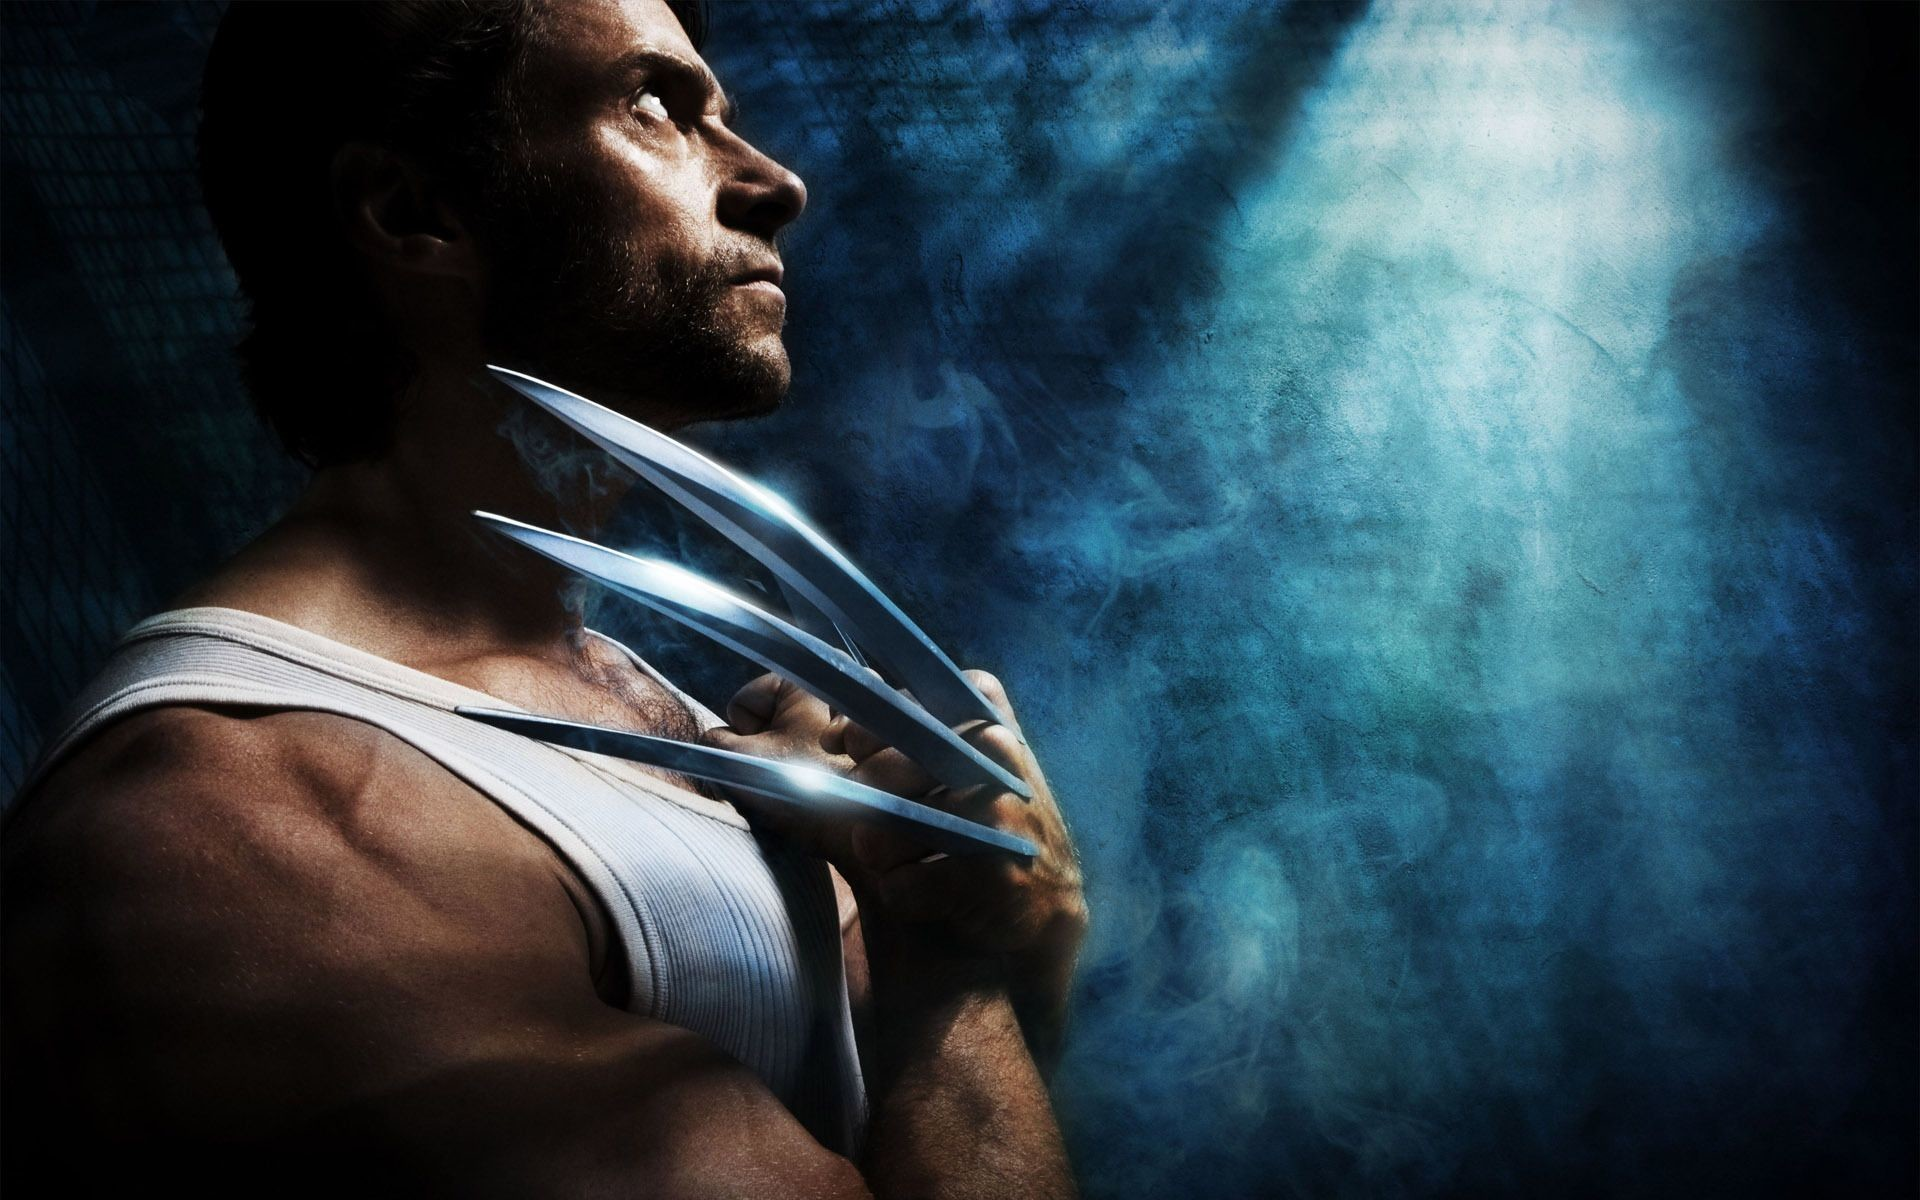 wolverine wallpaper full hd (81+ images)